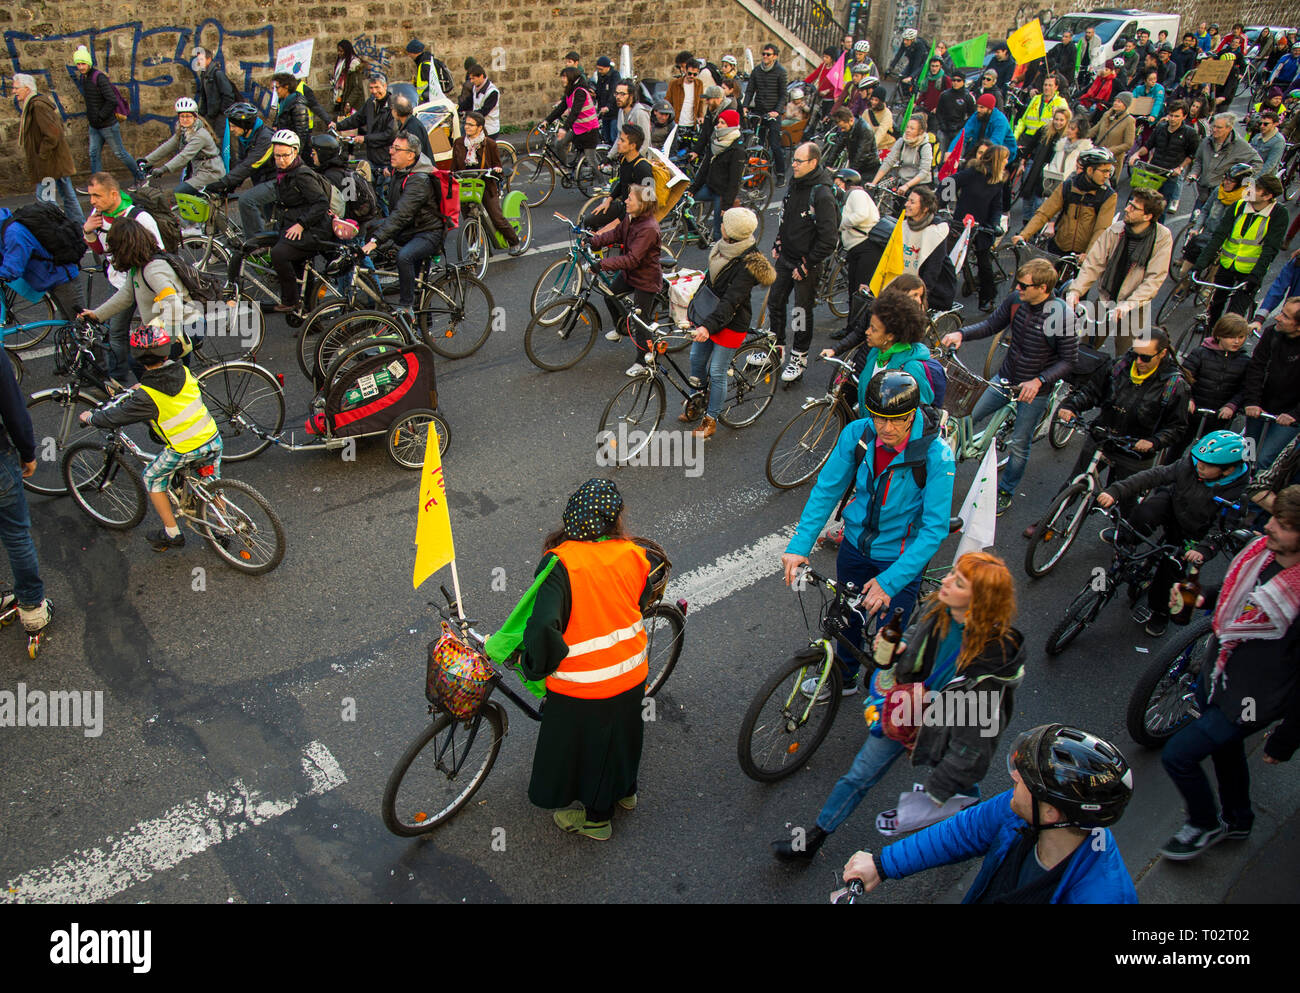 Paris, France. 16th March 2019. Protesters seen riding bicycles during the March of The Century strike in Paris. Thousands of people demonstrated in the streets of Paris to denounce the inaction of the government about the climate change during a march called 'March of The Century' (La Marche du Siecle). Credit: SOPA Images Limited/Alamy Live News - Stock Image